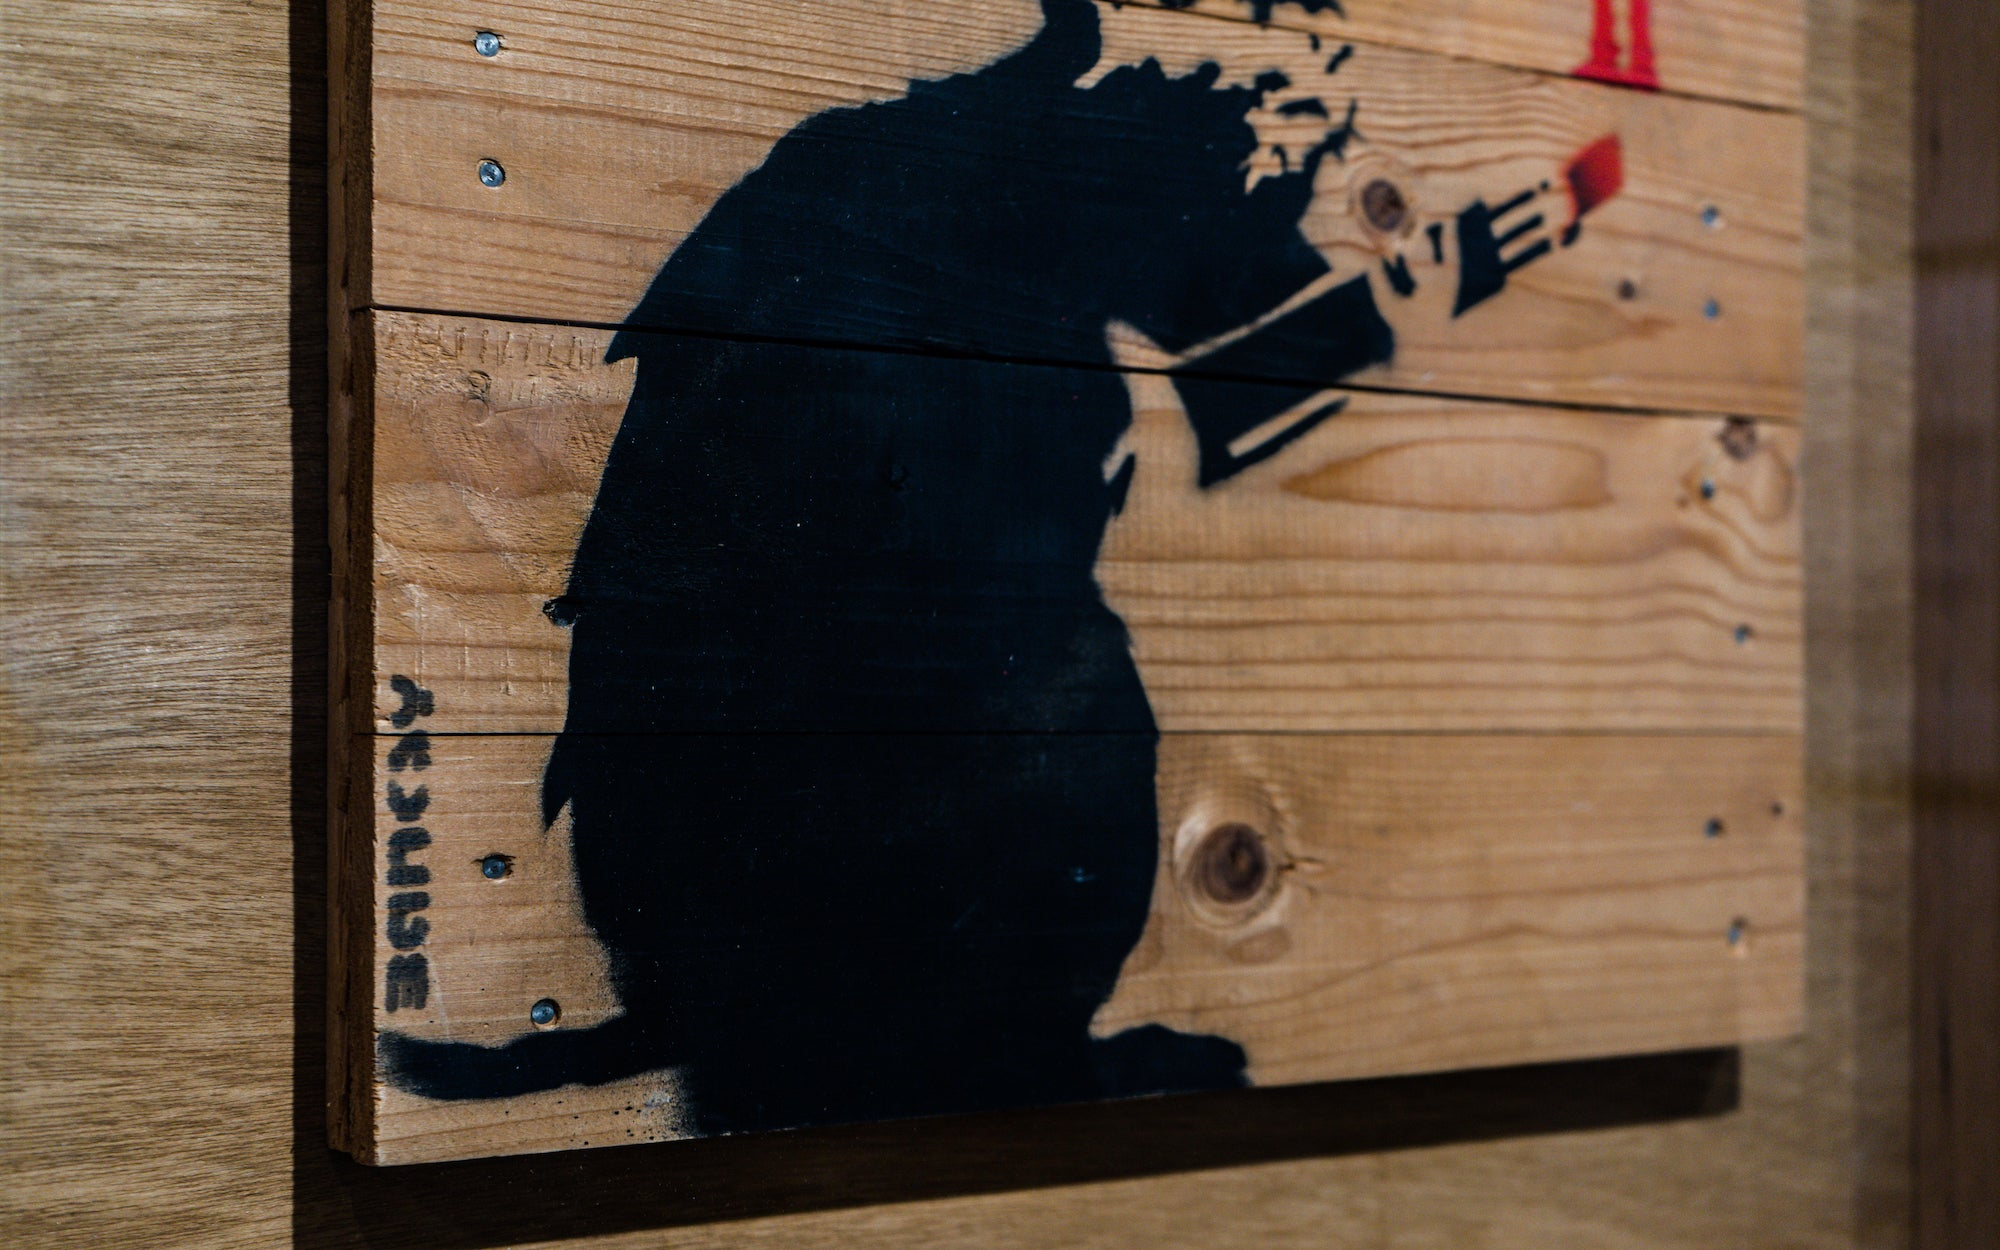 Banksy: Who's Laughing Now? His First Solo Exhibition in Hong Kong